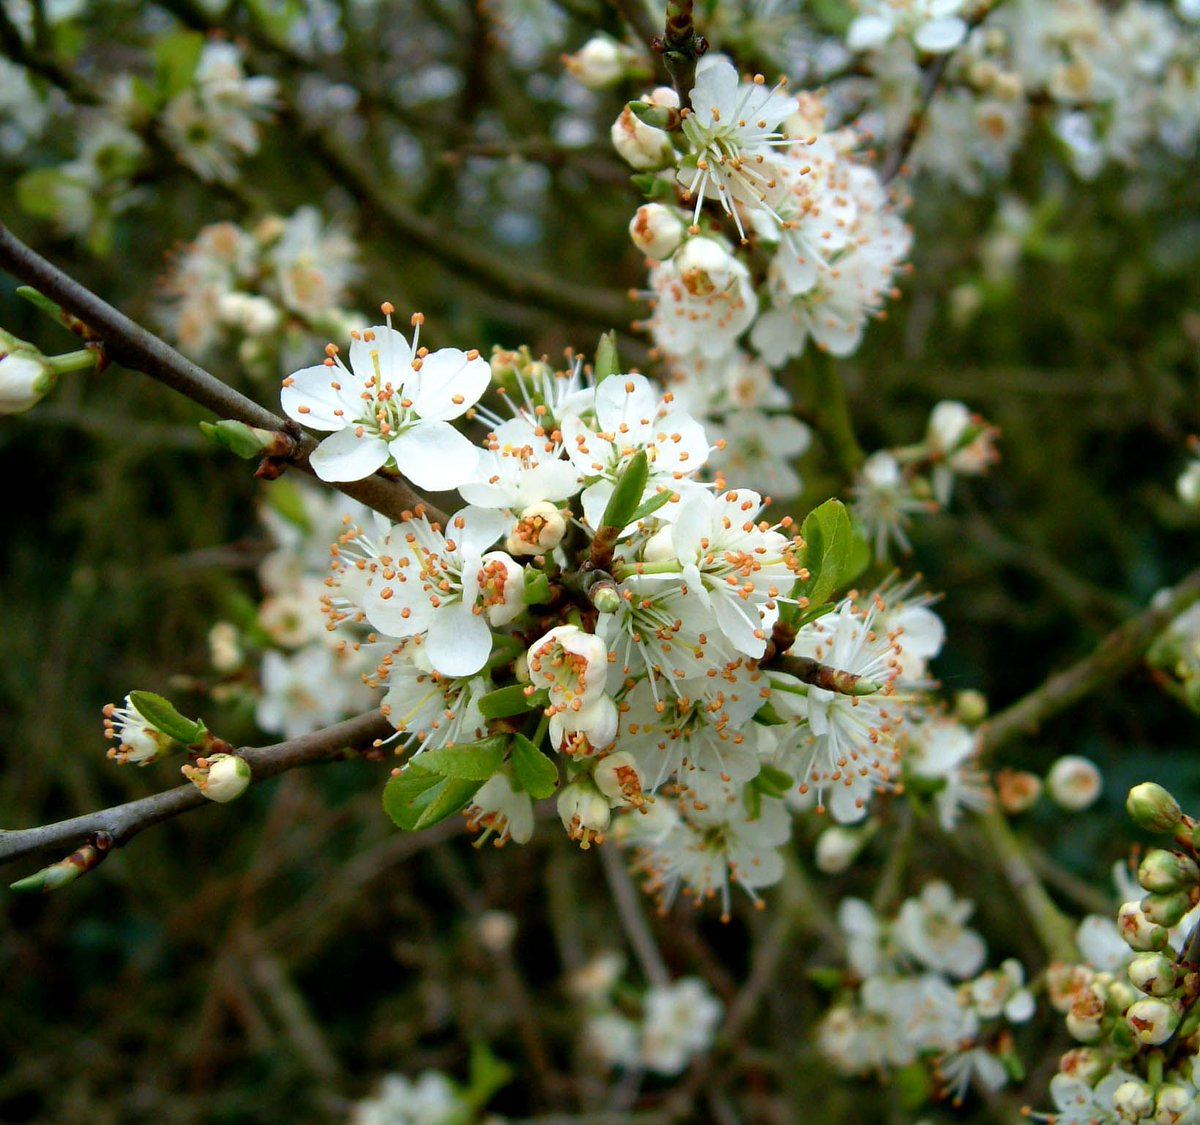 Woodland Trust On Twitter Blackthorns White Flowers Appear On